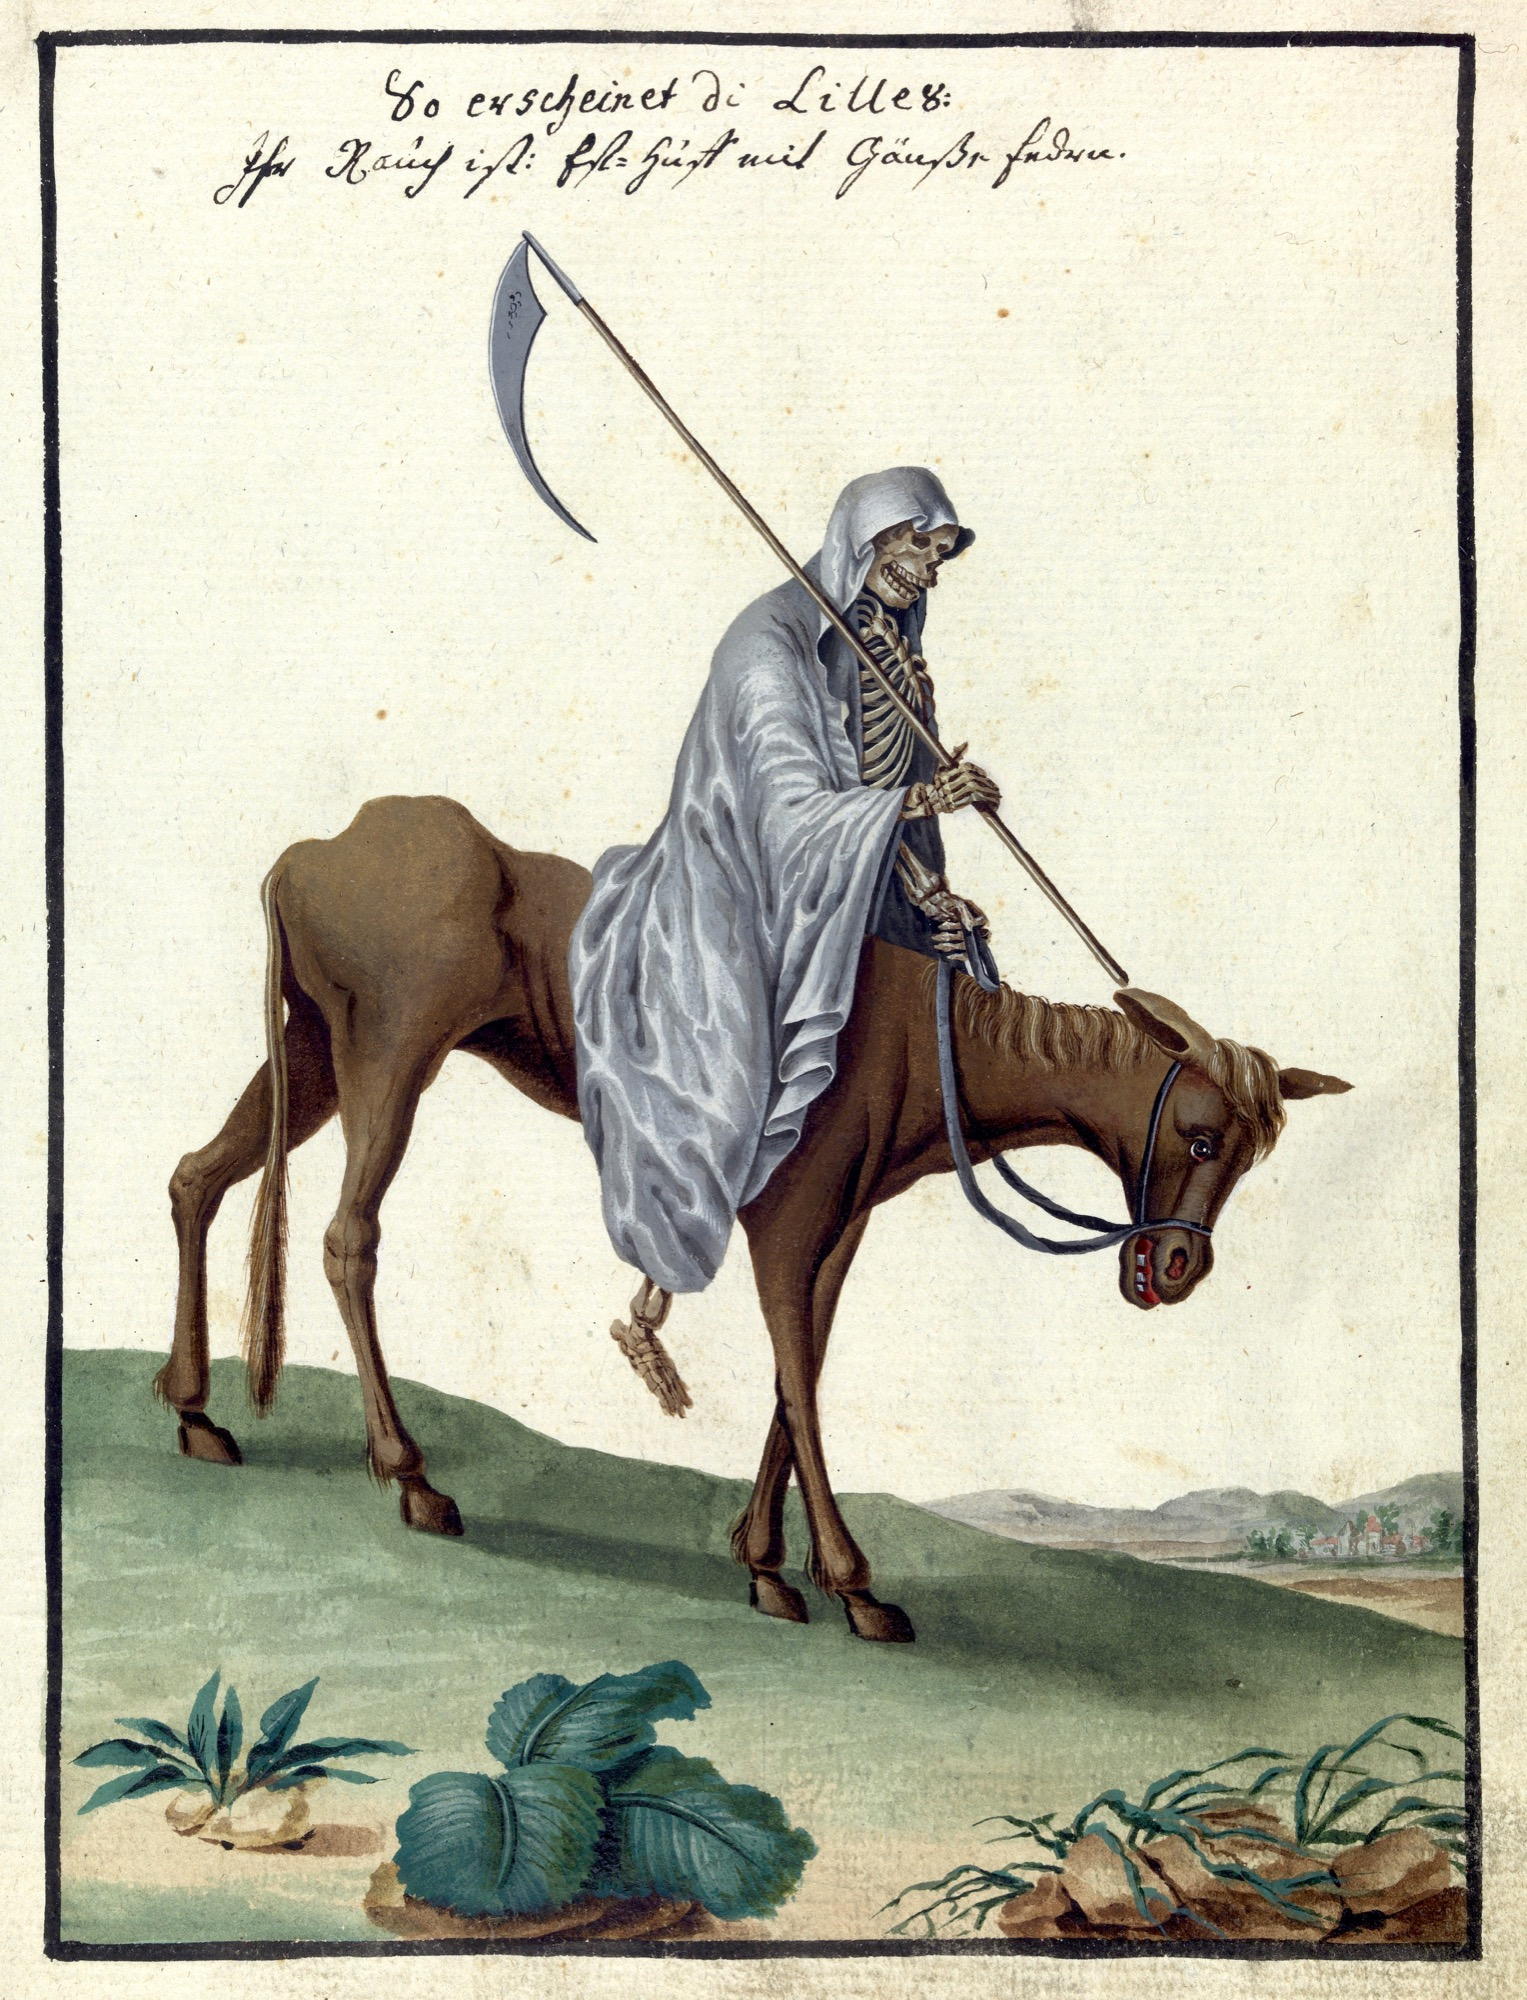 L0076368 Illustration of the Grim Reaper on horseback, MS 1766. Credit: Wellcome Library, London. Wellcome Images images@wellcome.ac.uk http://wellcomeimages.org Compendium rarissimum totius Artis Magicae sistematisatae per celeberrimos Artis hujus Magistros. Anno 1057. Noli me tangere. Watercolour c. 1775 Published:  -  Copyrighted work available under Creative Commons Attribution only licence CC BY 4.0 http://creativecommons.org/licenses/by/4.0/